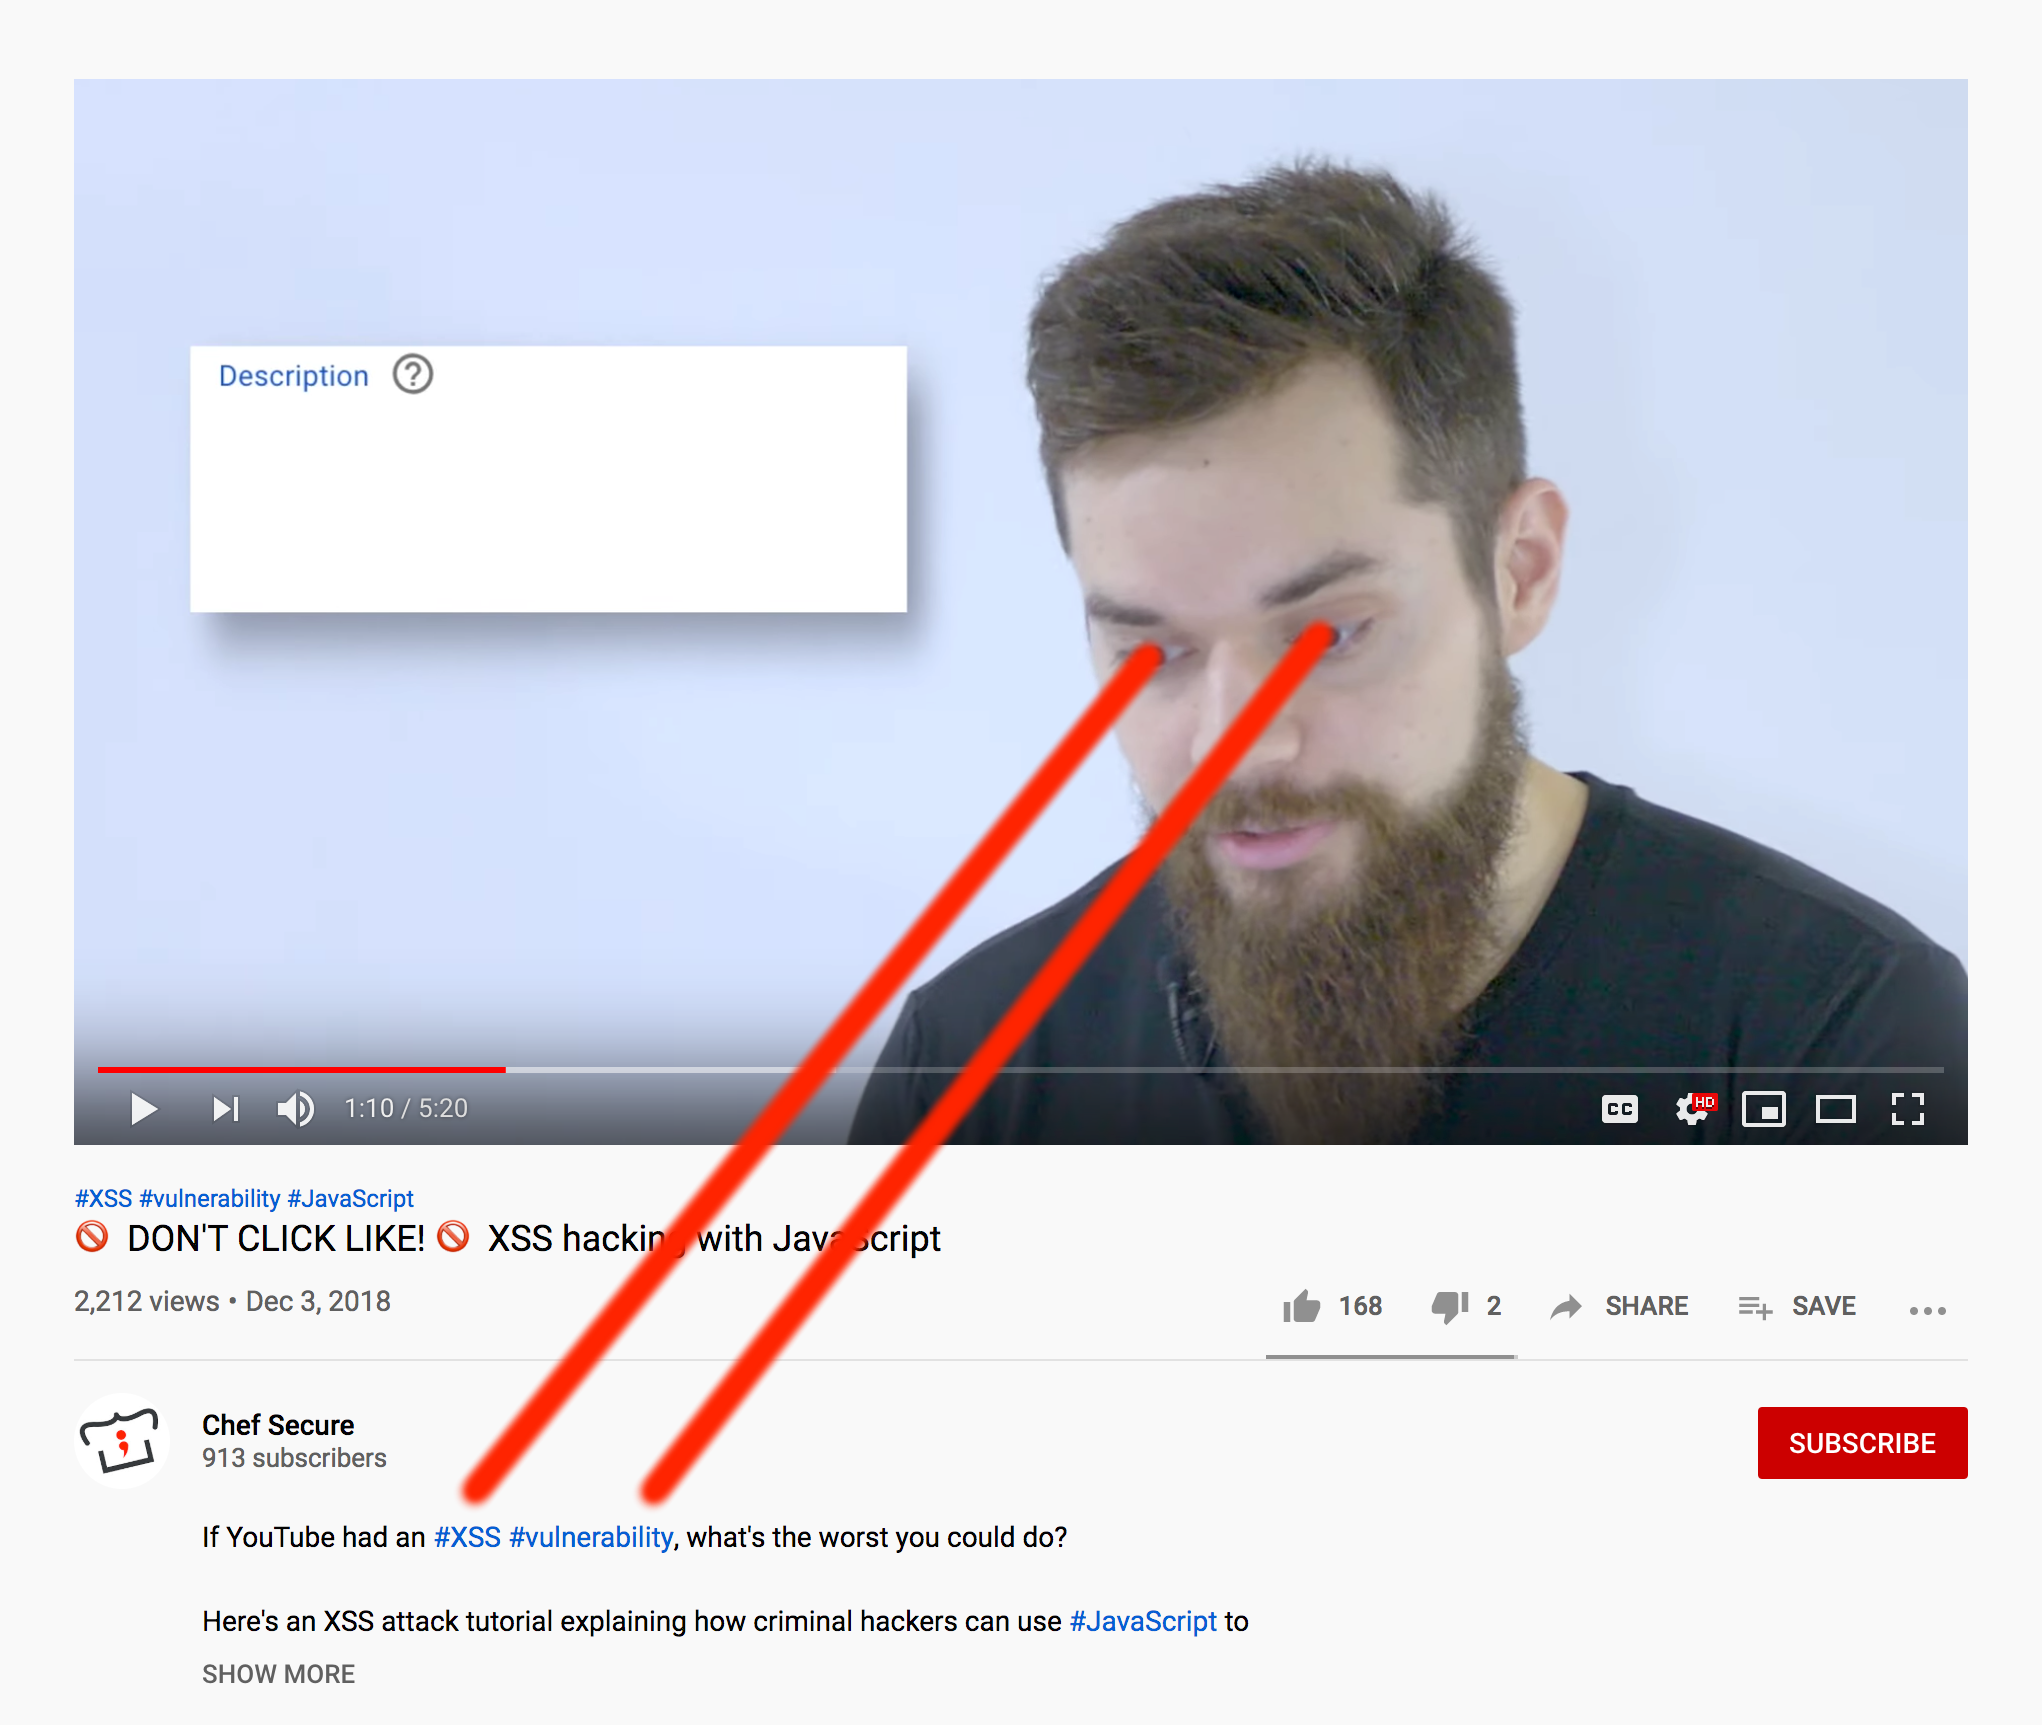 Hacker with laser focus on YouTube's description